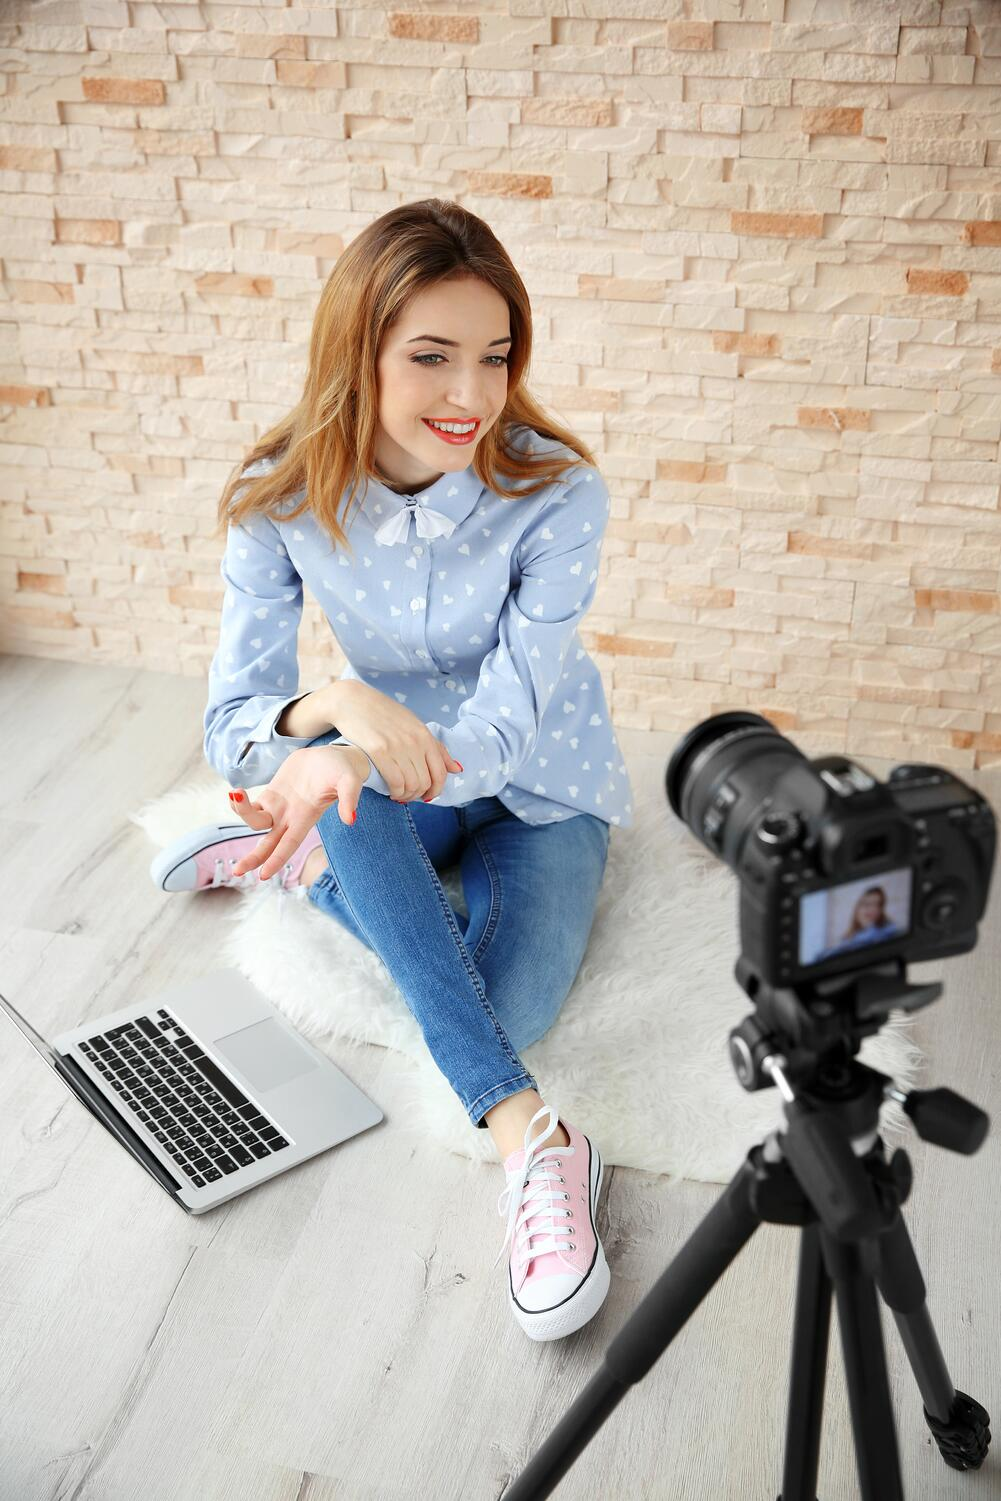 stock-photo-young-female-blogger-with-laptop-recording-video-at-home-435955549.jpg